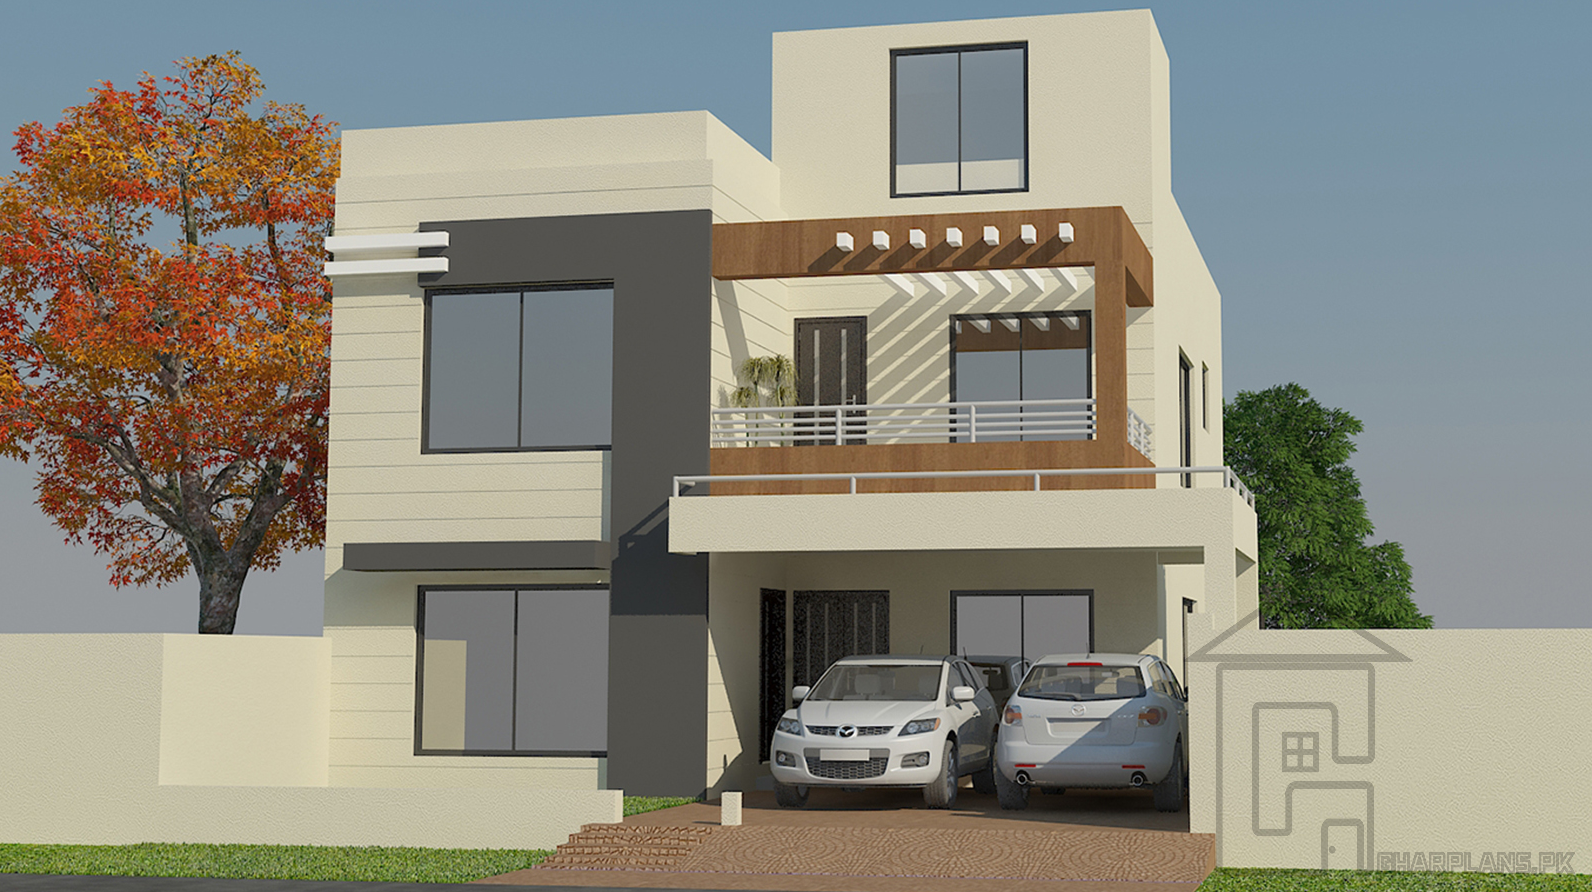 Pakistani house designs 10 marla 35 ft front and 65 ft depth and has 3 storeys this house design of pakistani style has 3 bedrooms with 3 bathrooms and